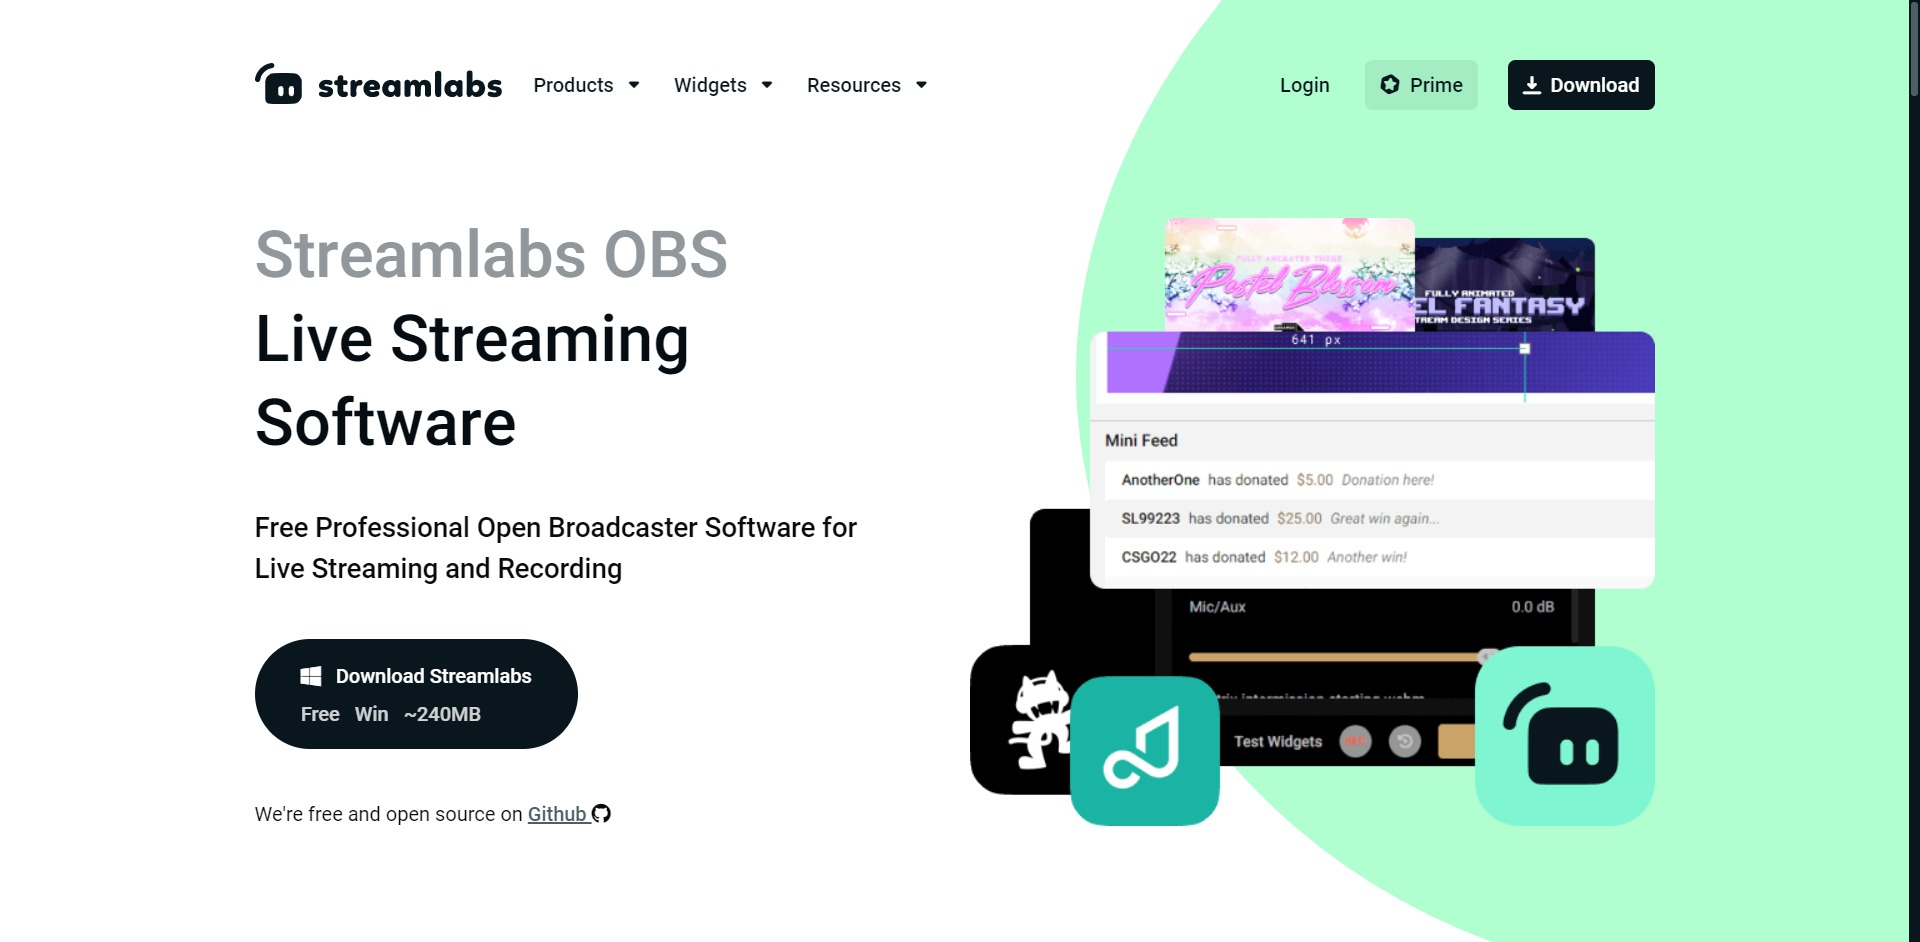 Streamlabs OBS main page